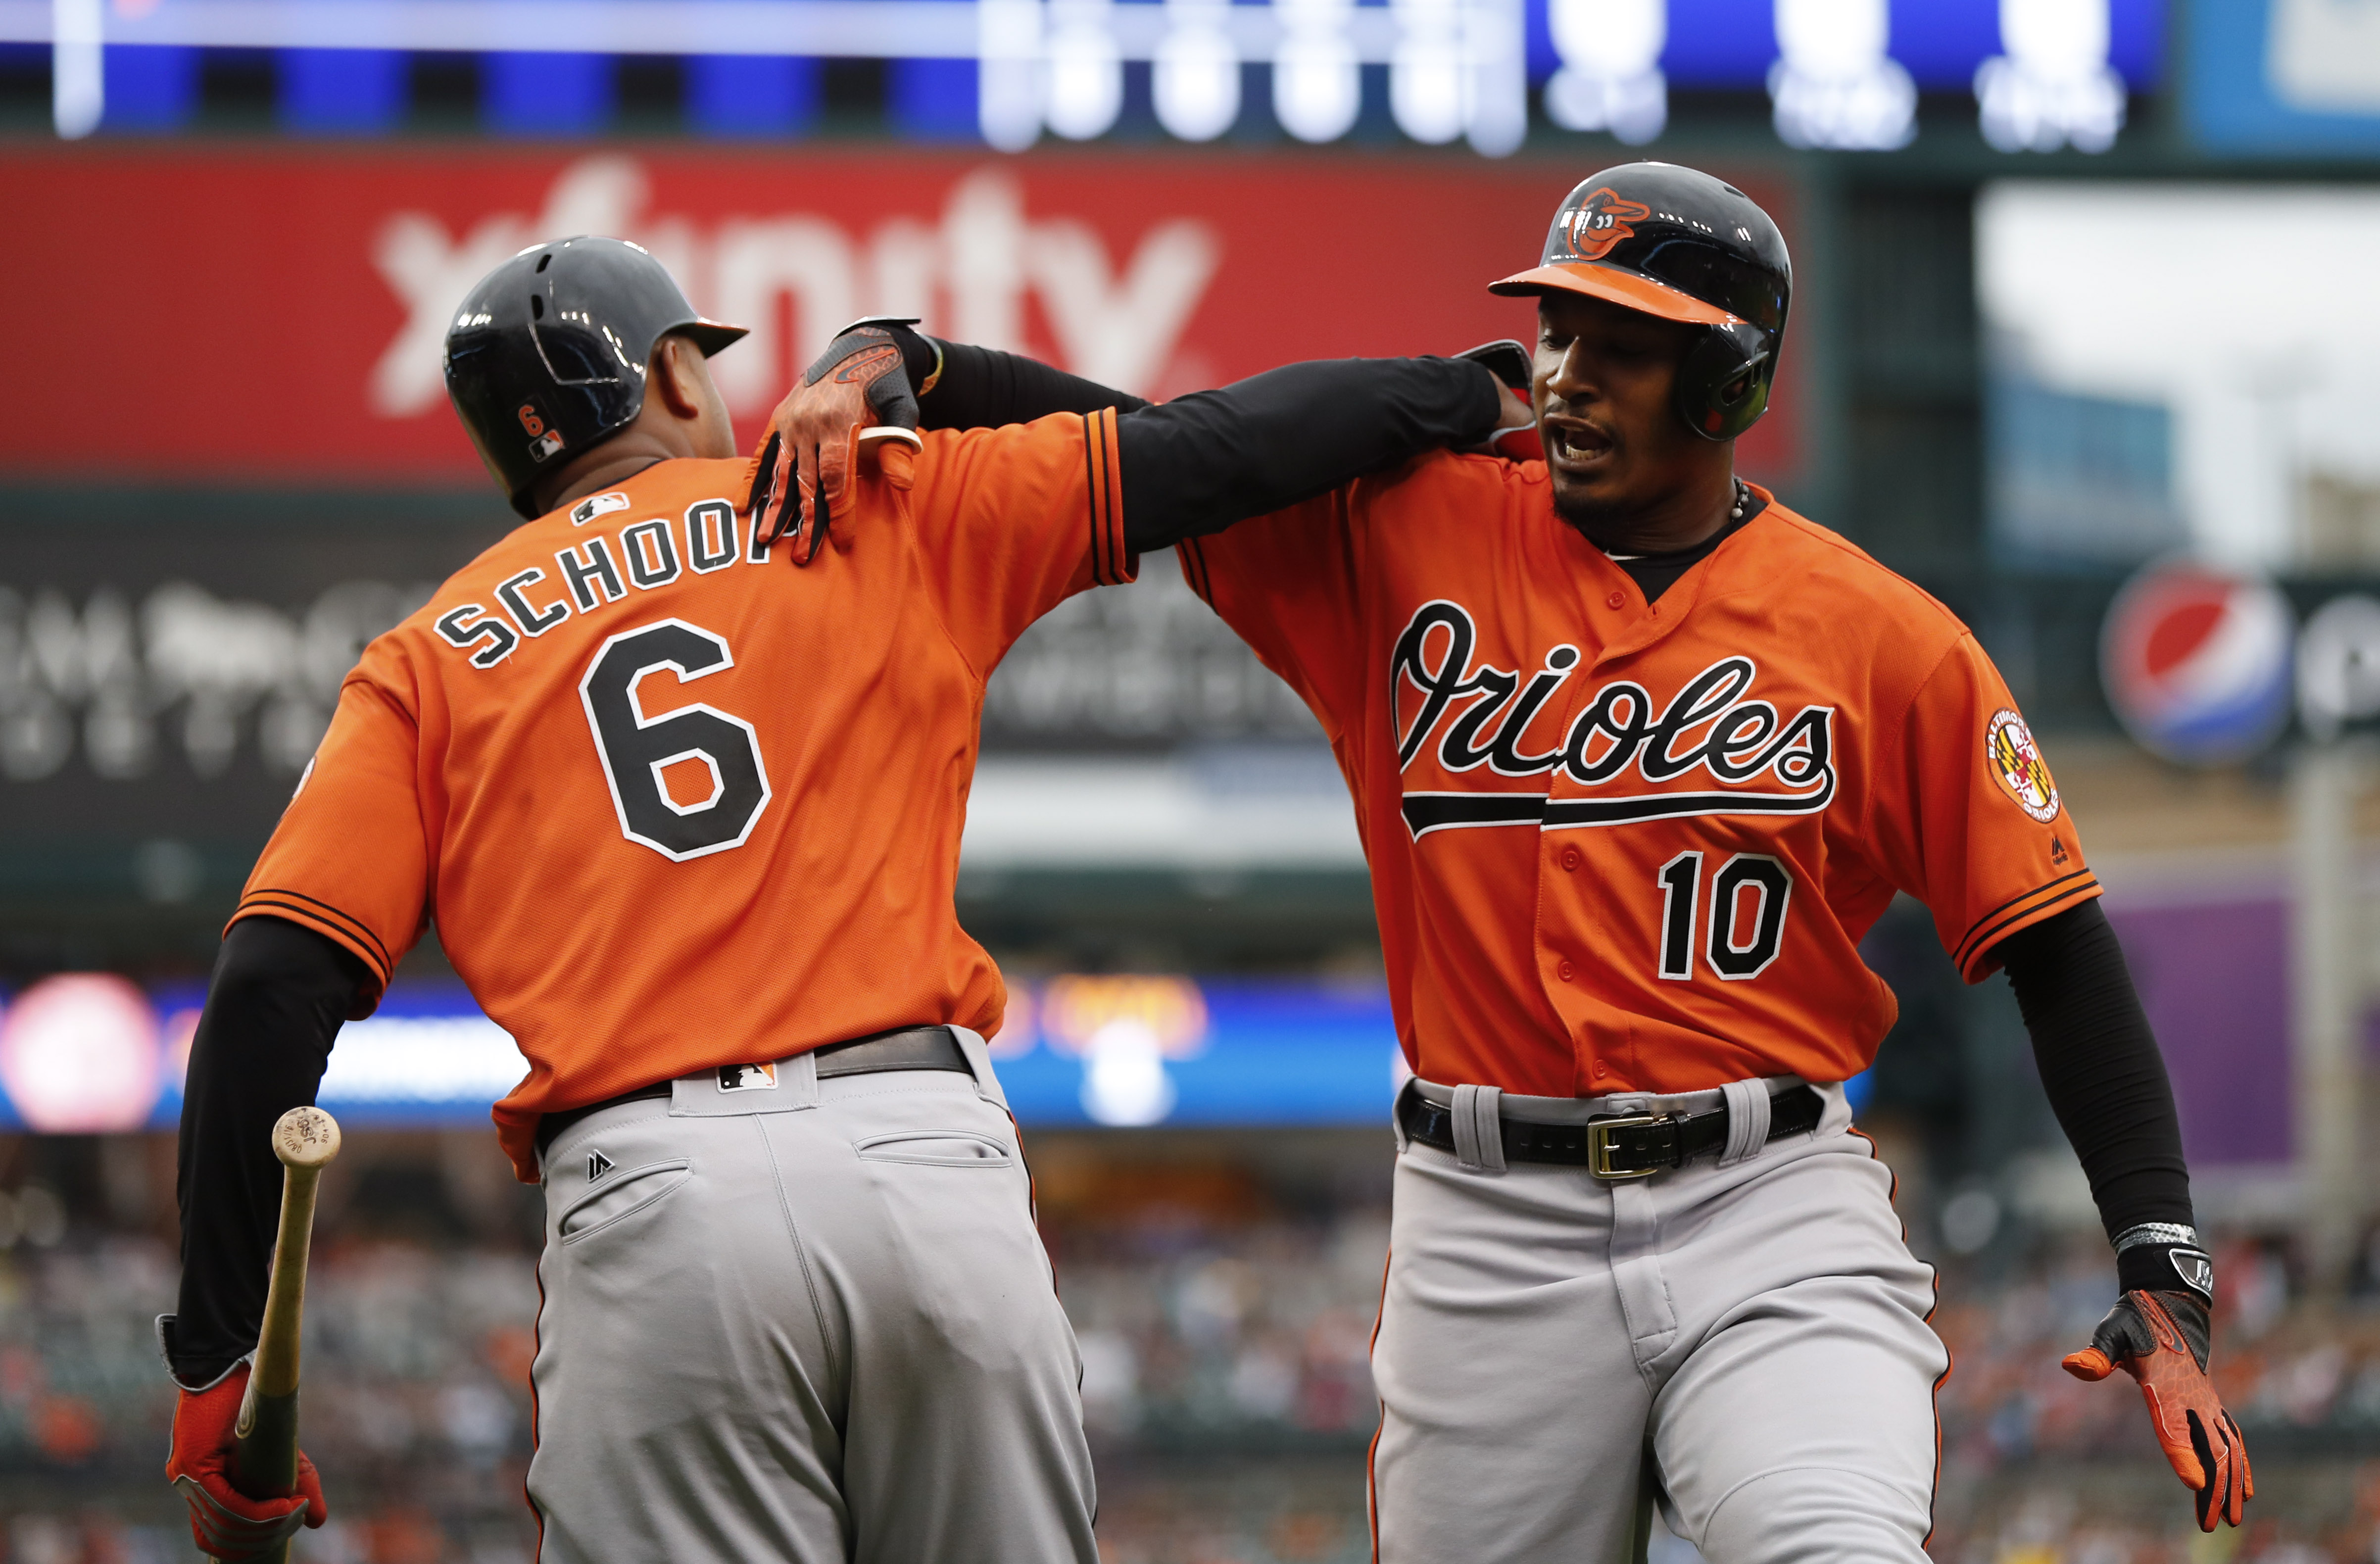 Baltimore Orioles' Adam Jones (10) celebrates his solo home run with Jonathan Schoop (6) against the Detroit Tigers in the first inning in Detroit, Saturday, Sept. 10, 2016. (AP Photo/Paul Sancya)